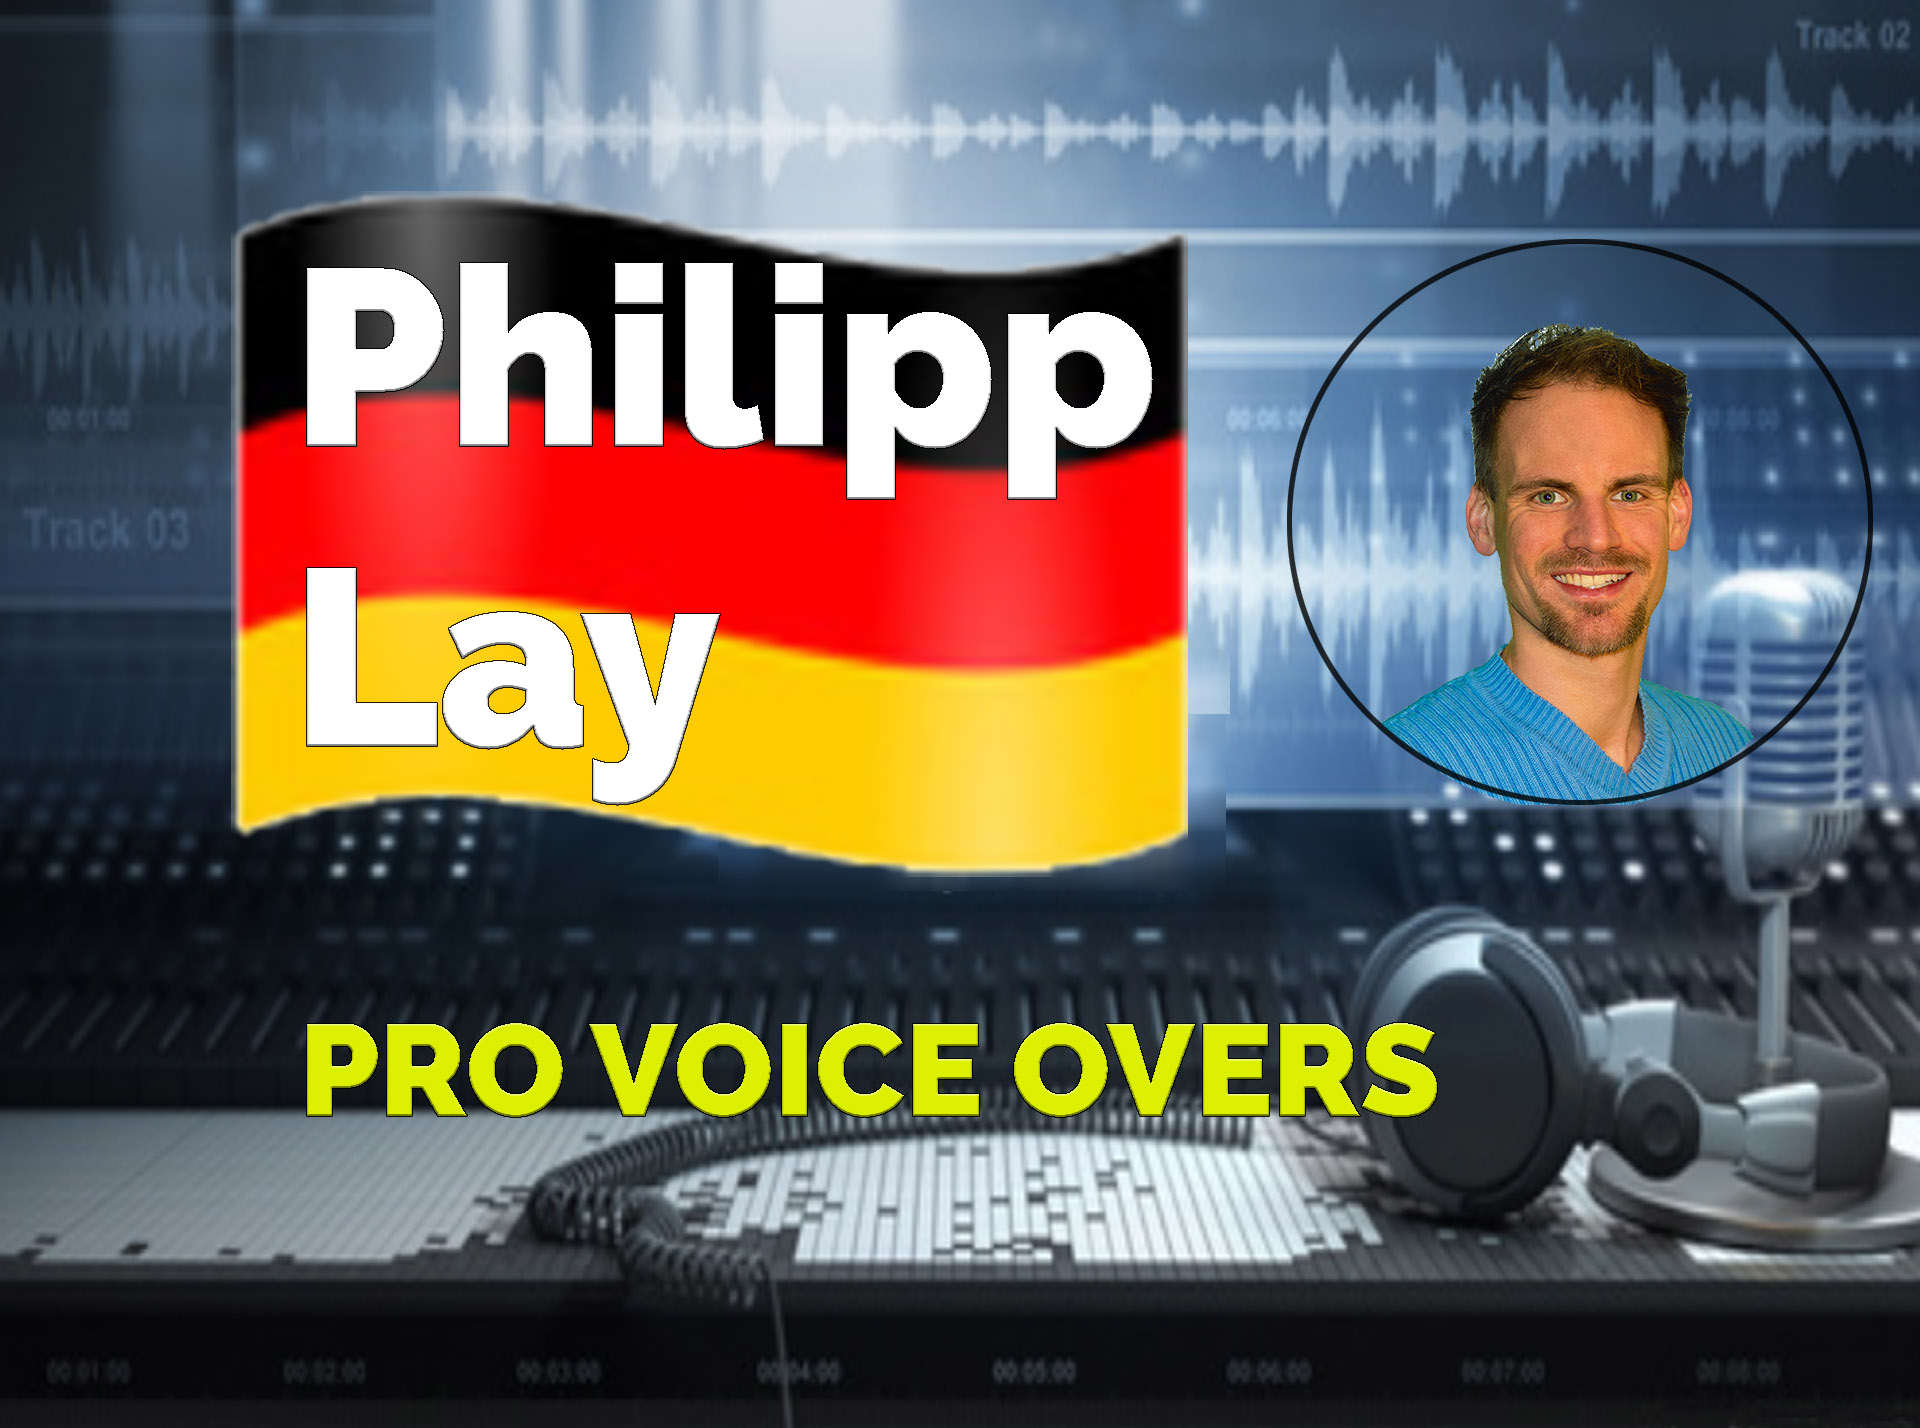 do a professional voiceover for you in less than 24h , Studio-qualityncludes: De-breathing Mastering Noise free. 100 words